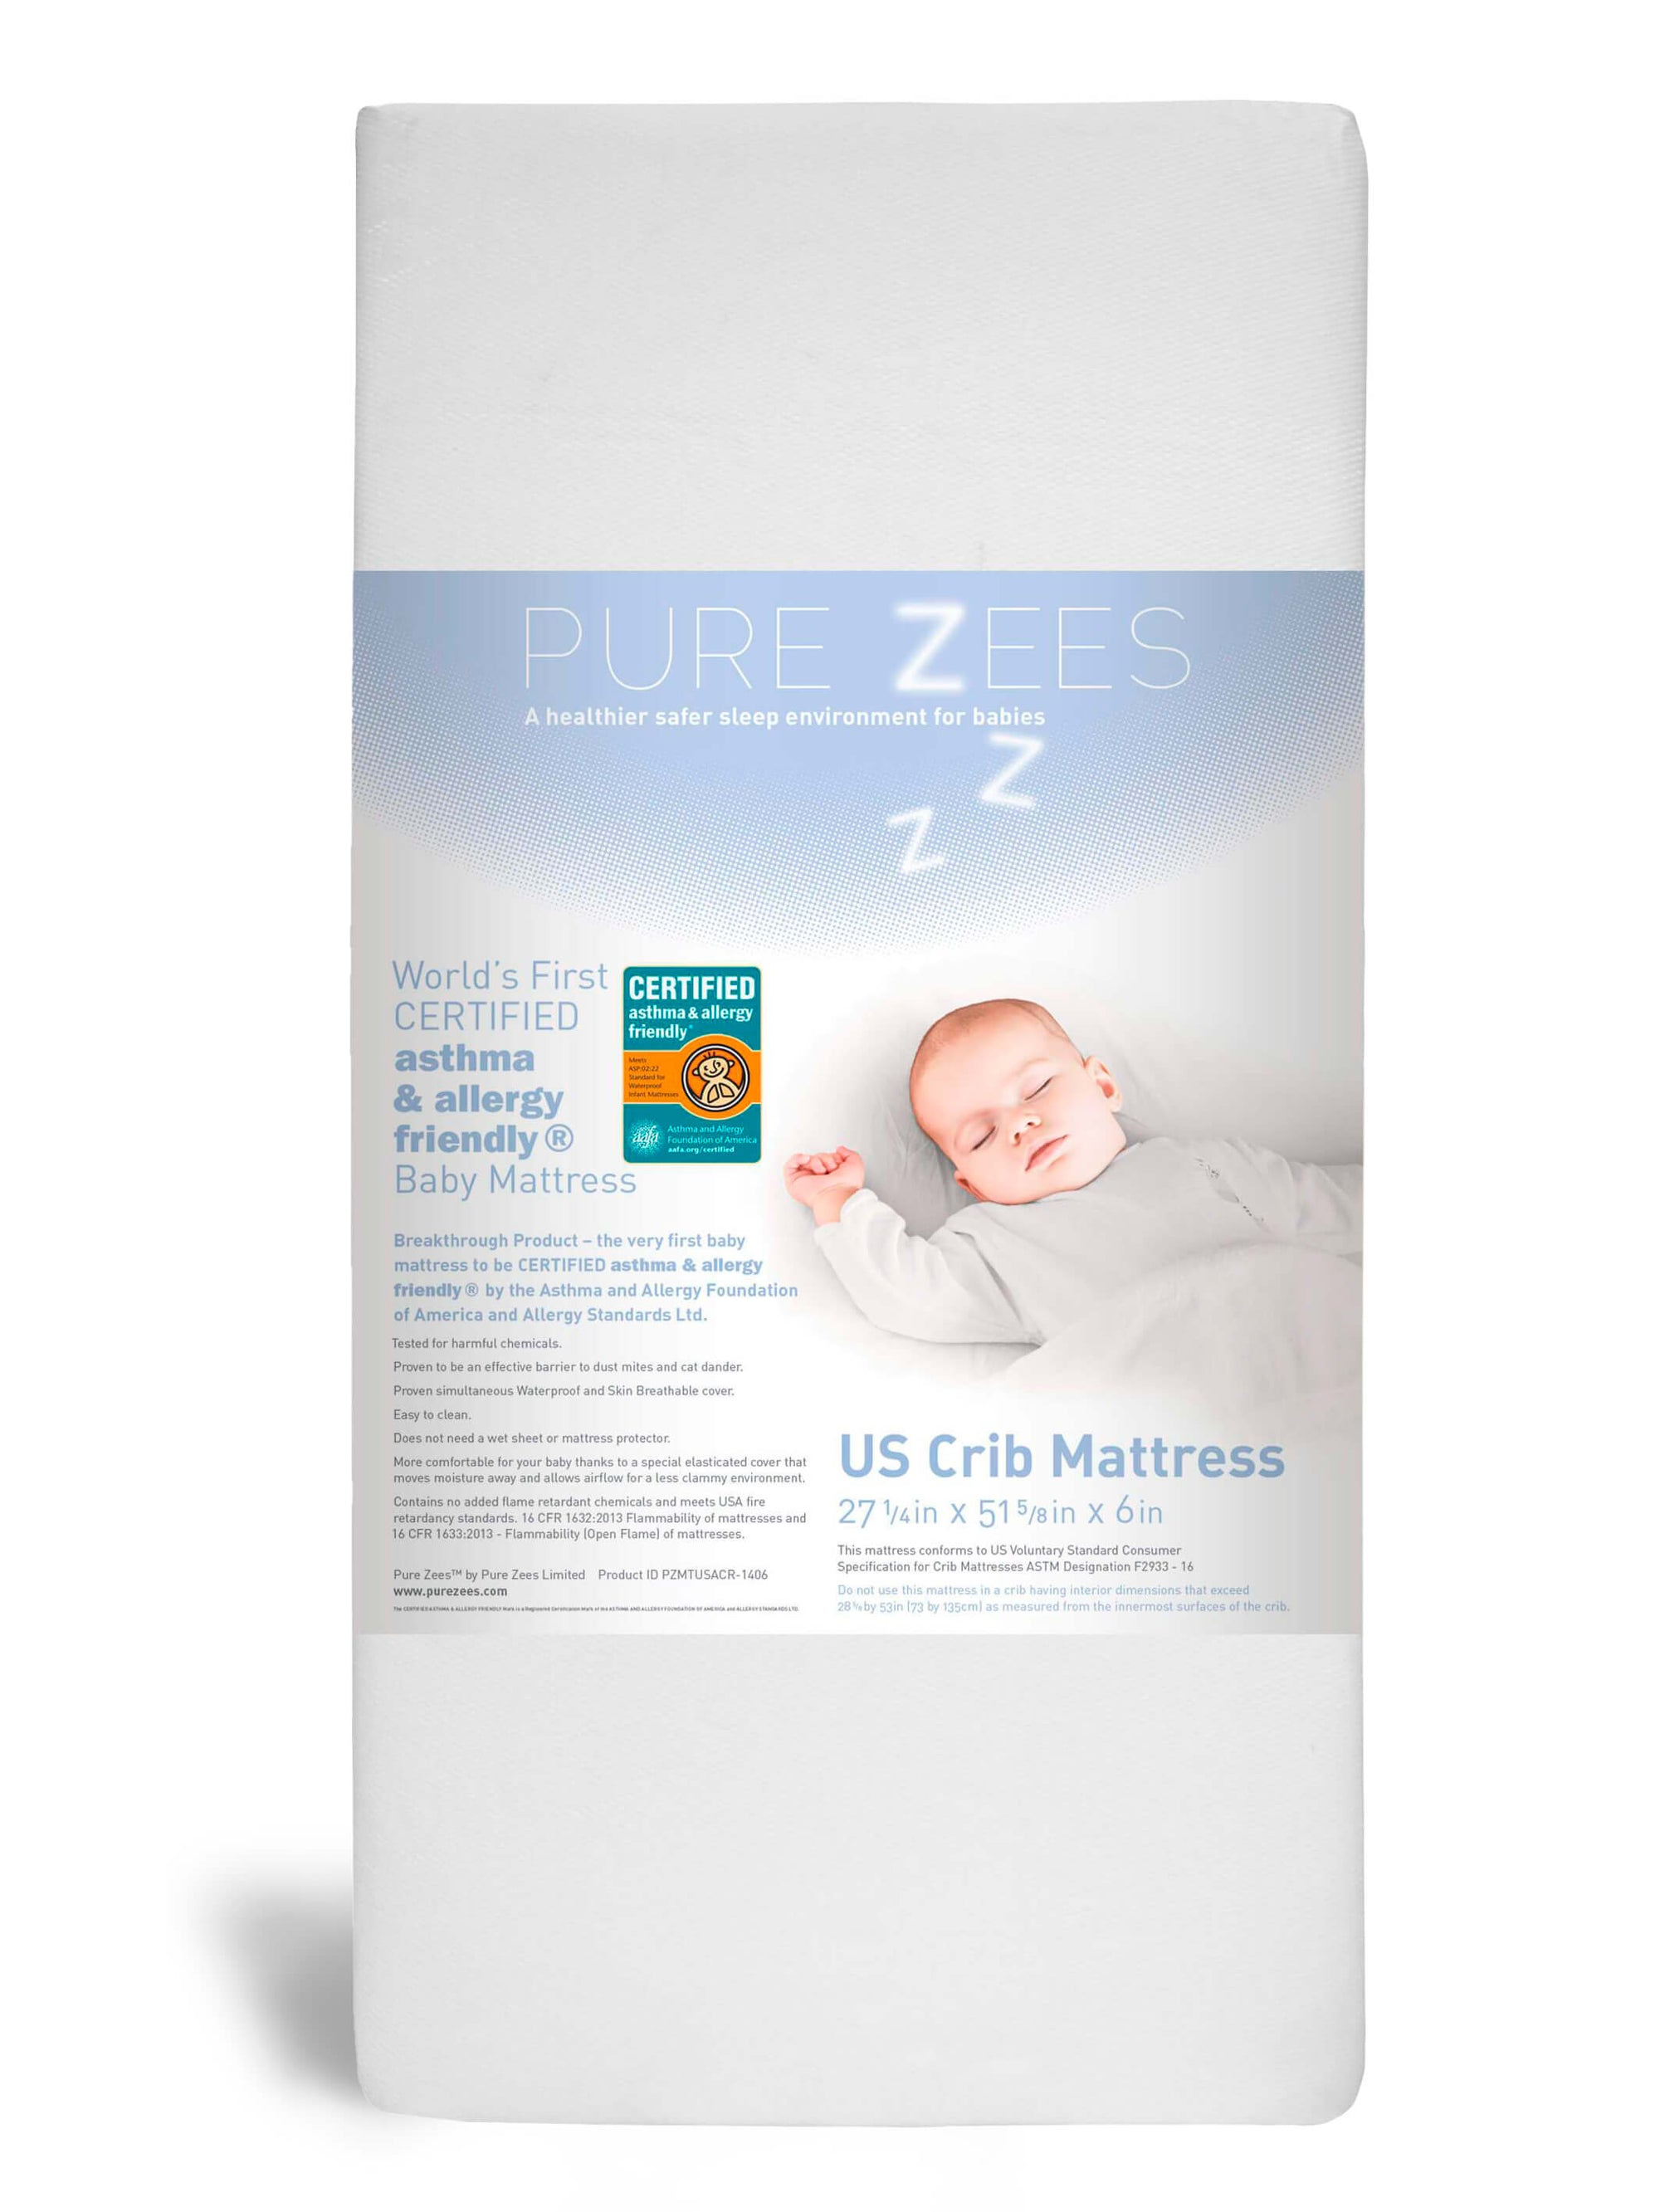 Pure Zees US Baby Crib Mattress 52 x 28 inches asthma & allergy friendly® certified